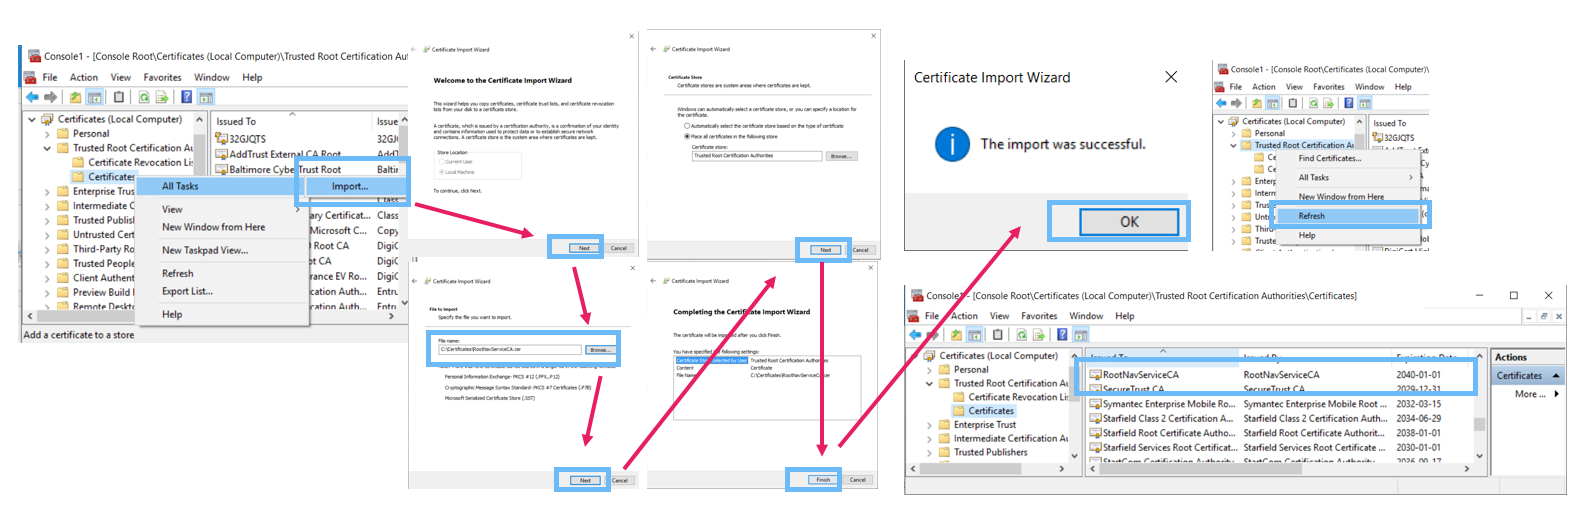 Implement security certificate in dynamics nav 2016 create a certificate revocation list for the root certification authority and install it xflitez Gallery